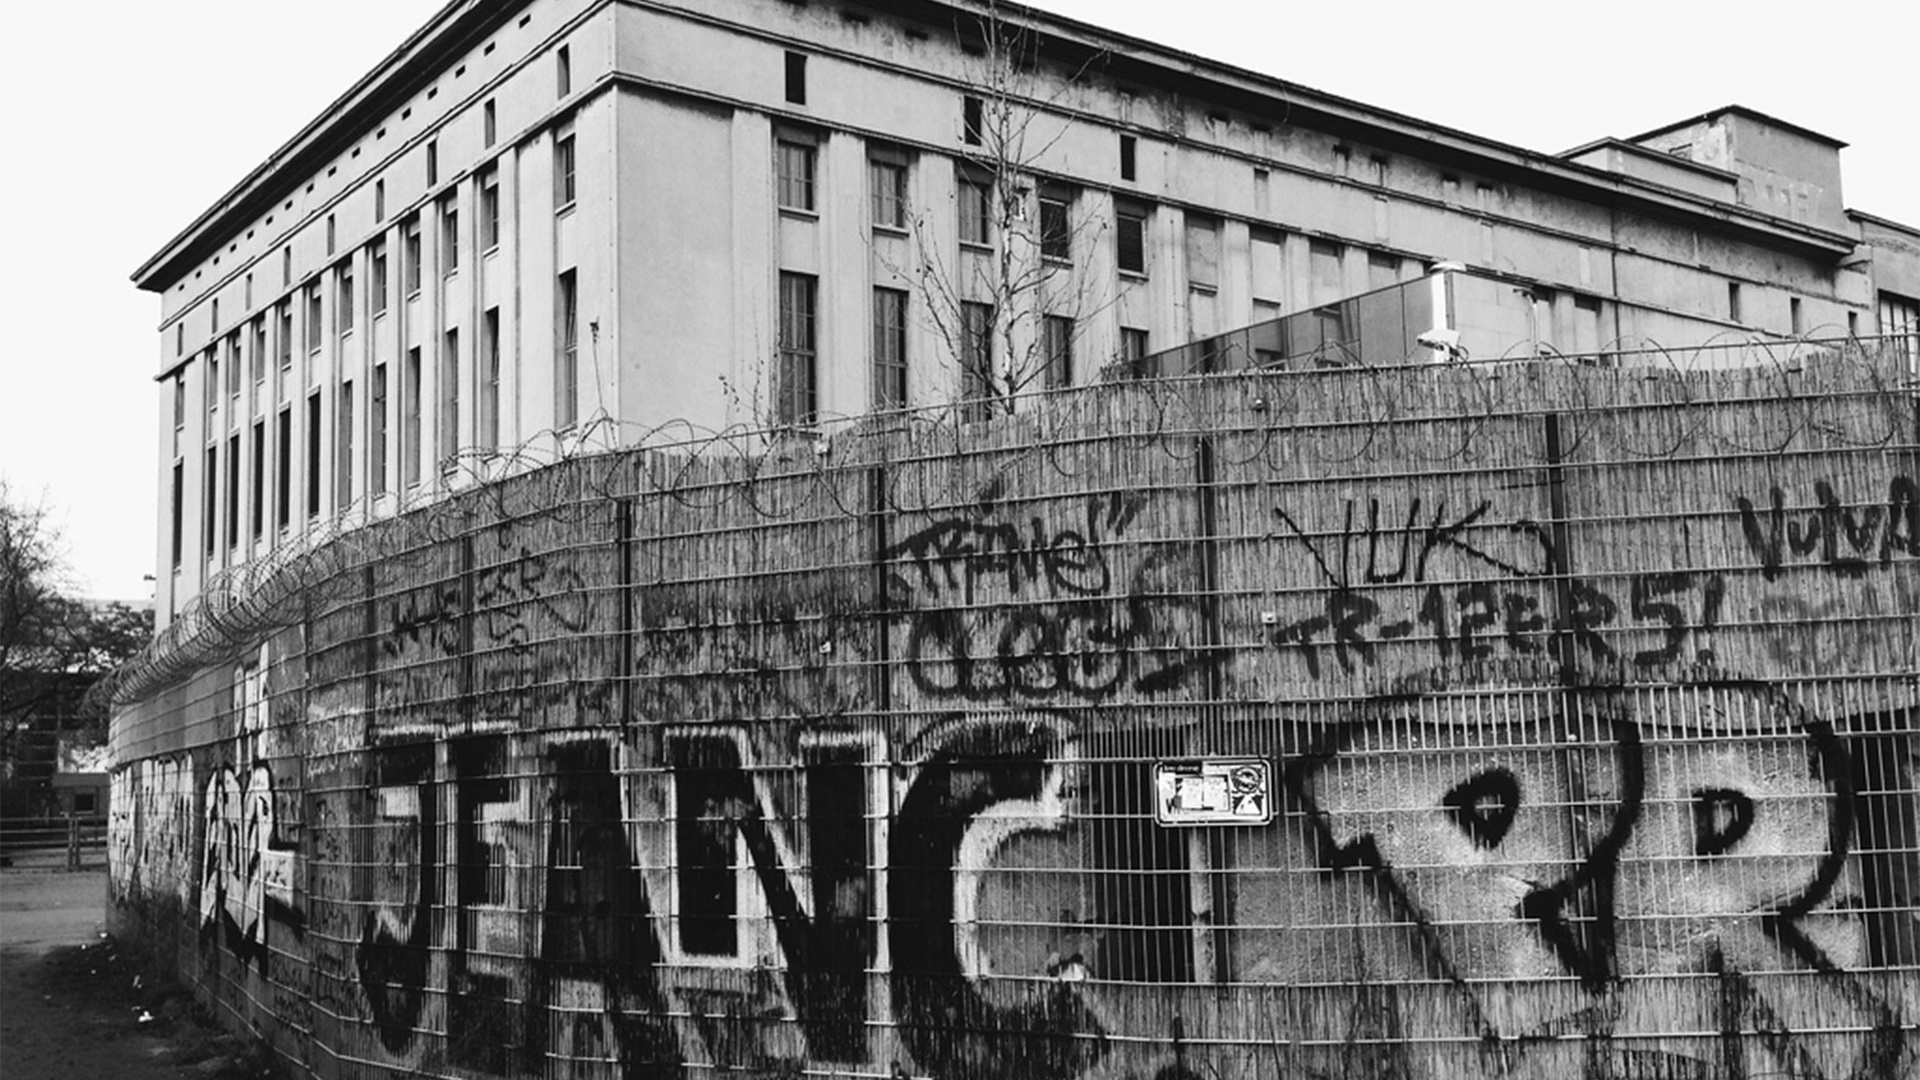 Exterior of berghain in black and white